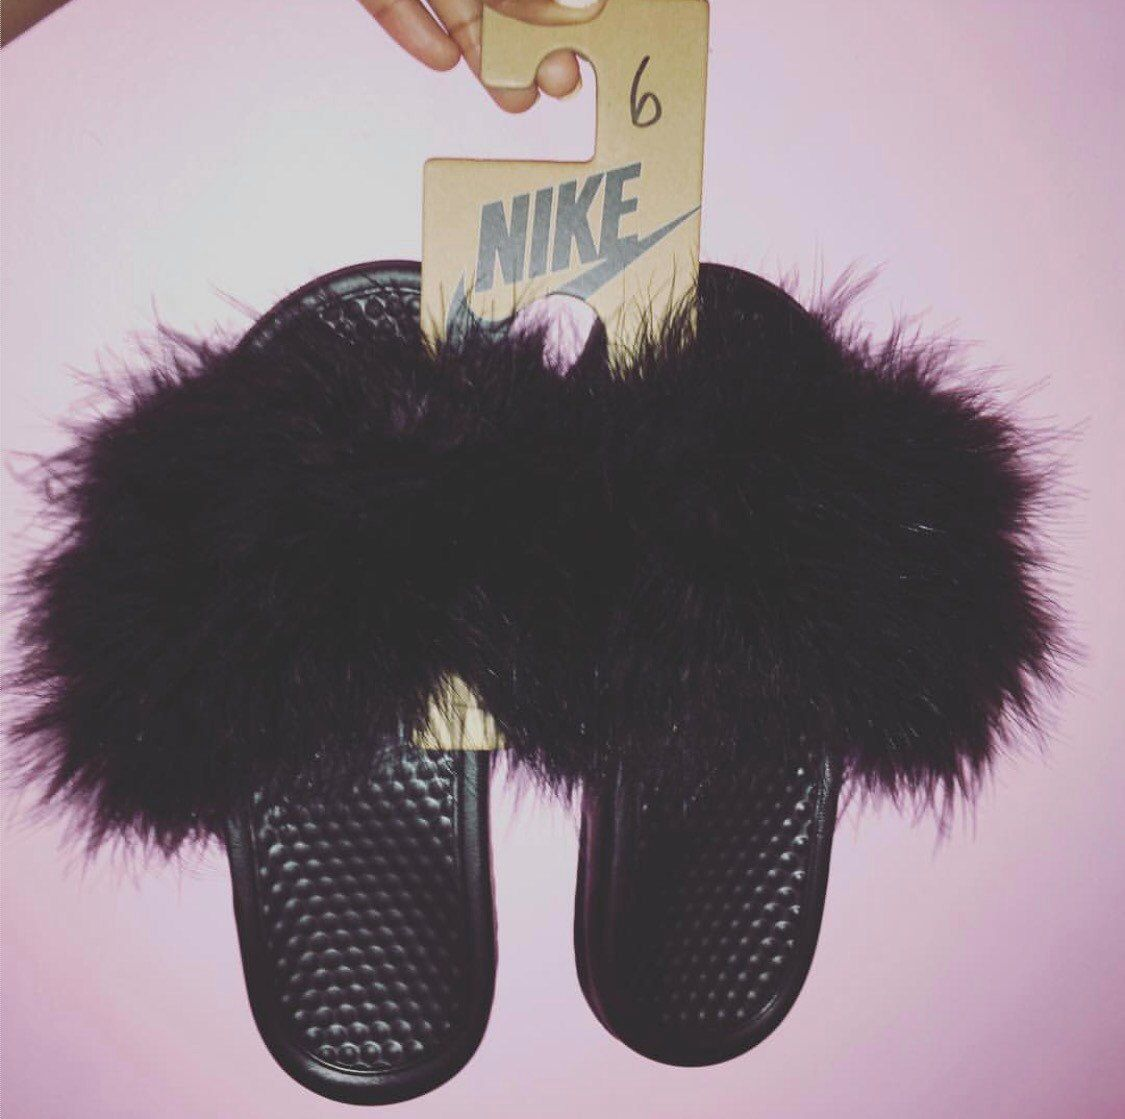 72479f1782fa1a Custom nike slides with faux fur. Nike slides typically come in black and  white